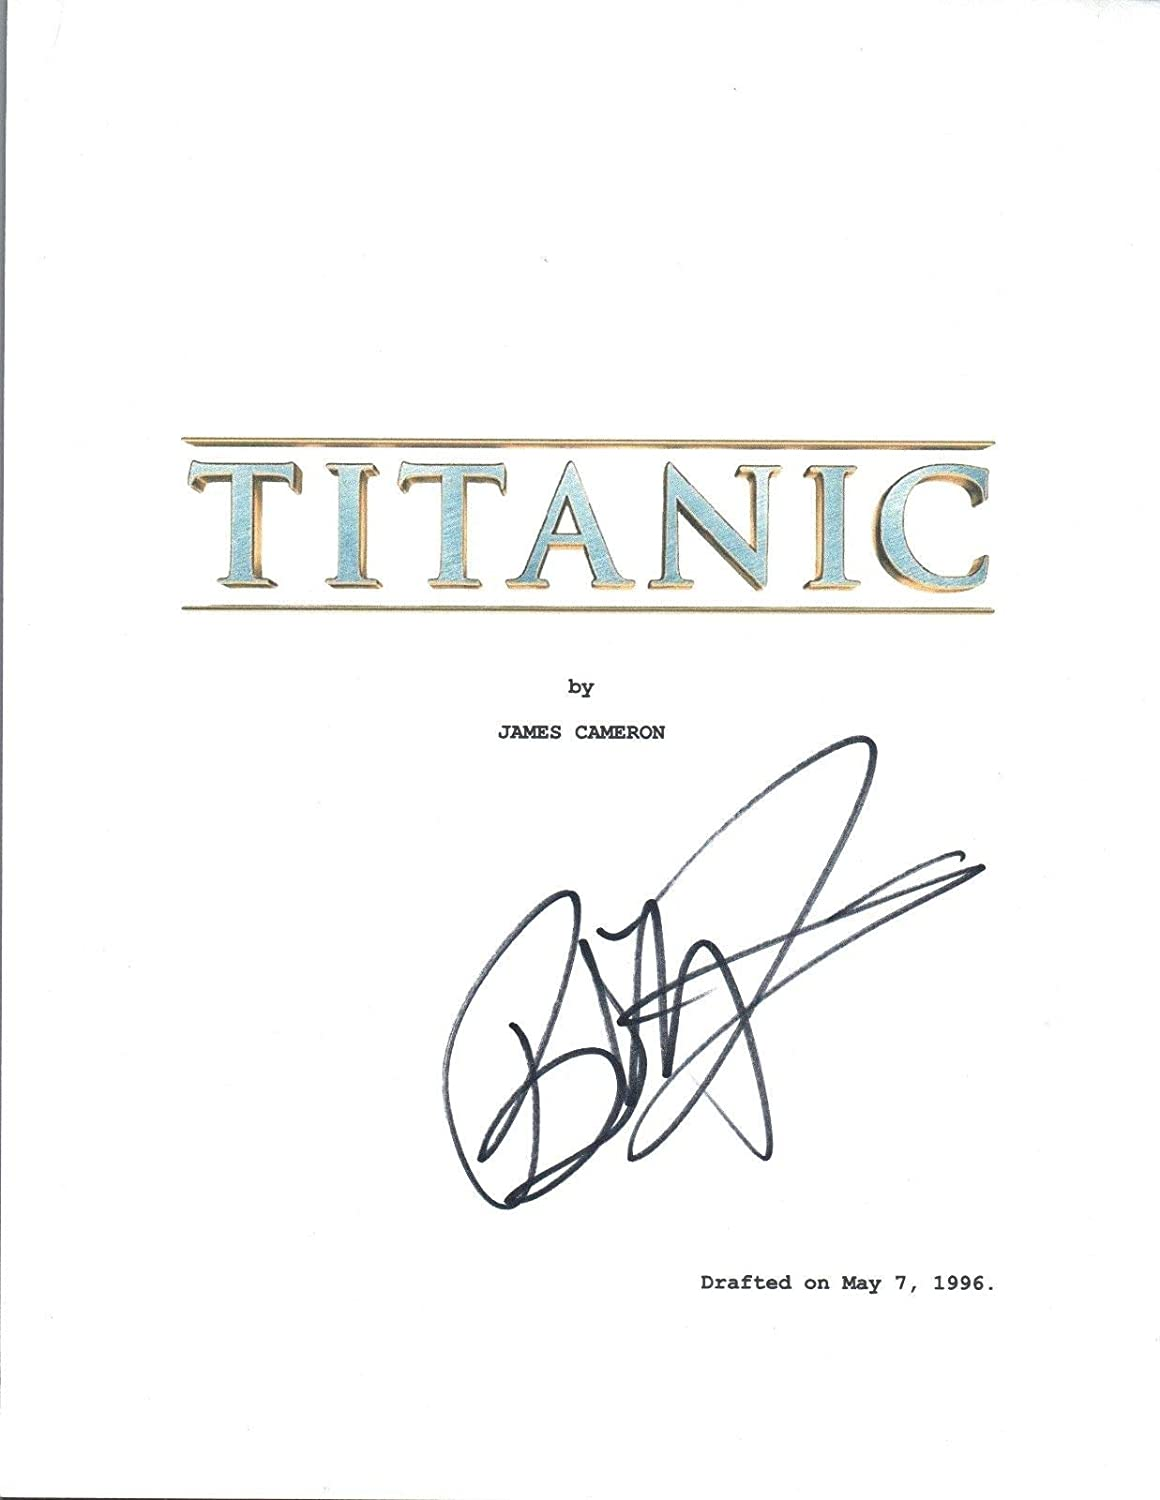 Billy Zane Signed Autographed TITANIC Full Movie Script COA Unbranded